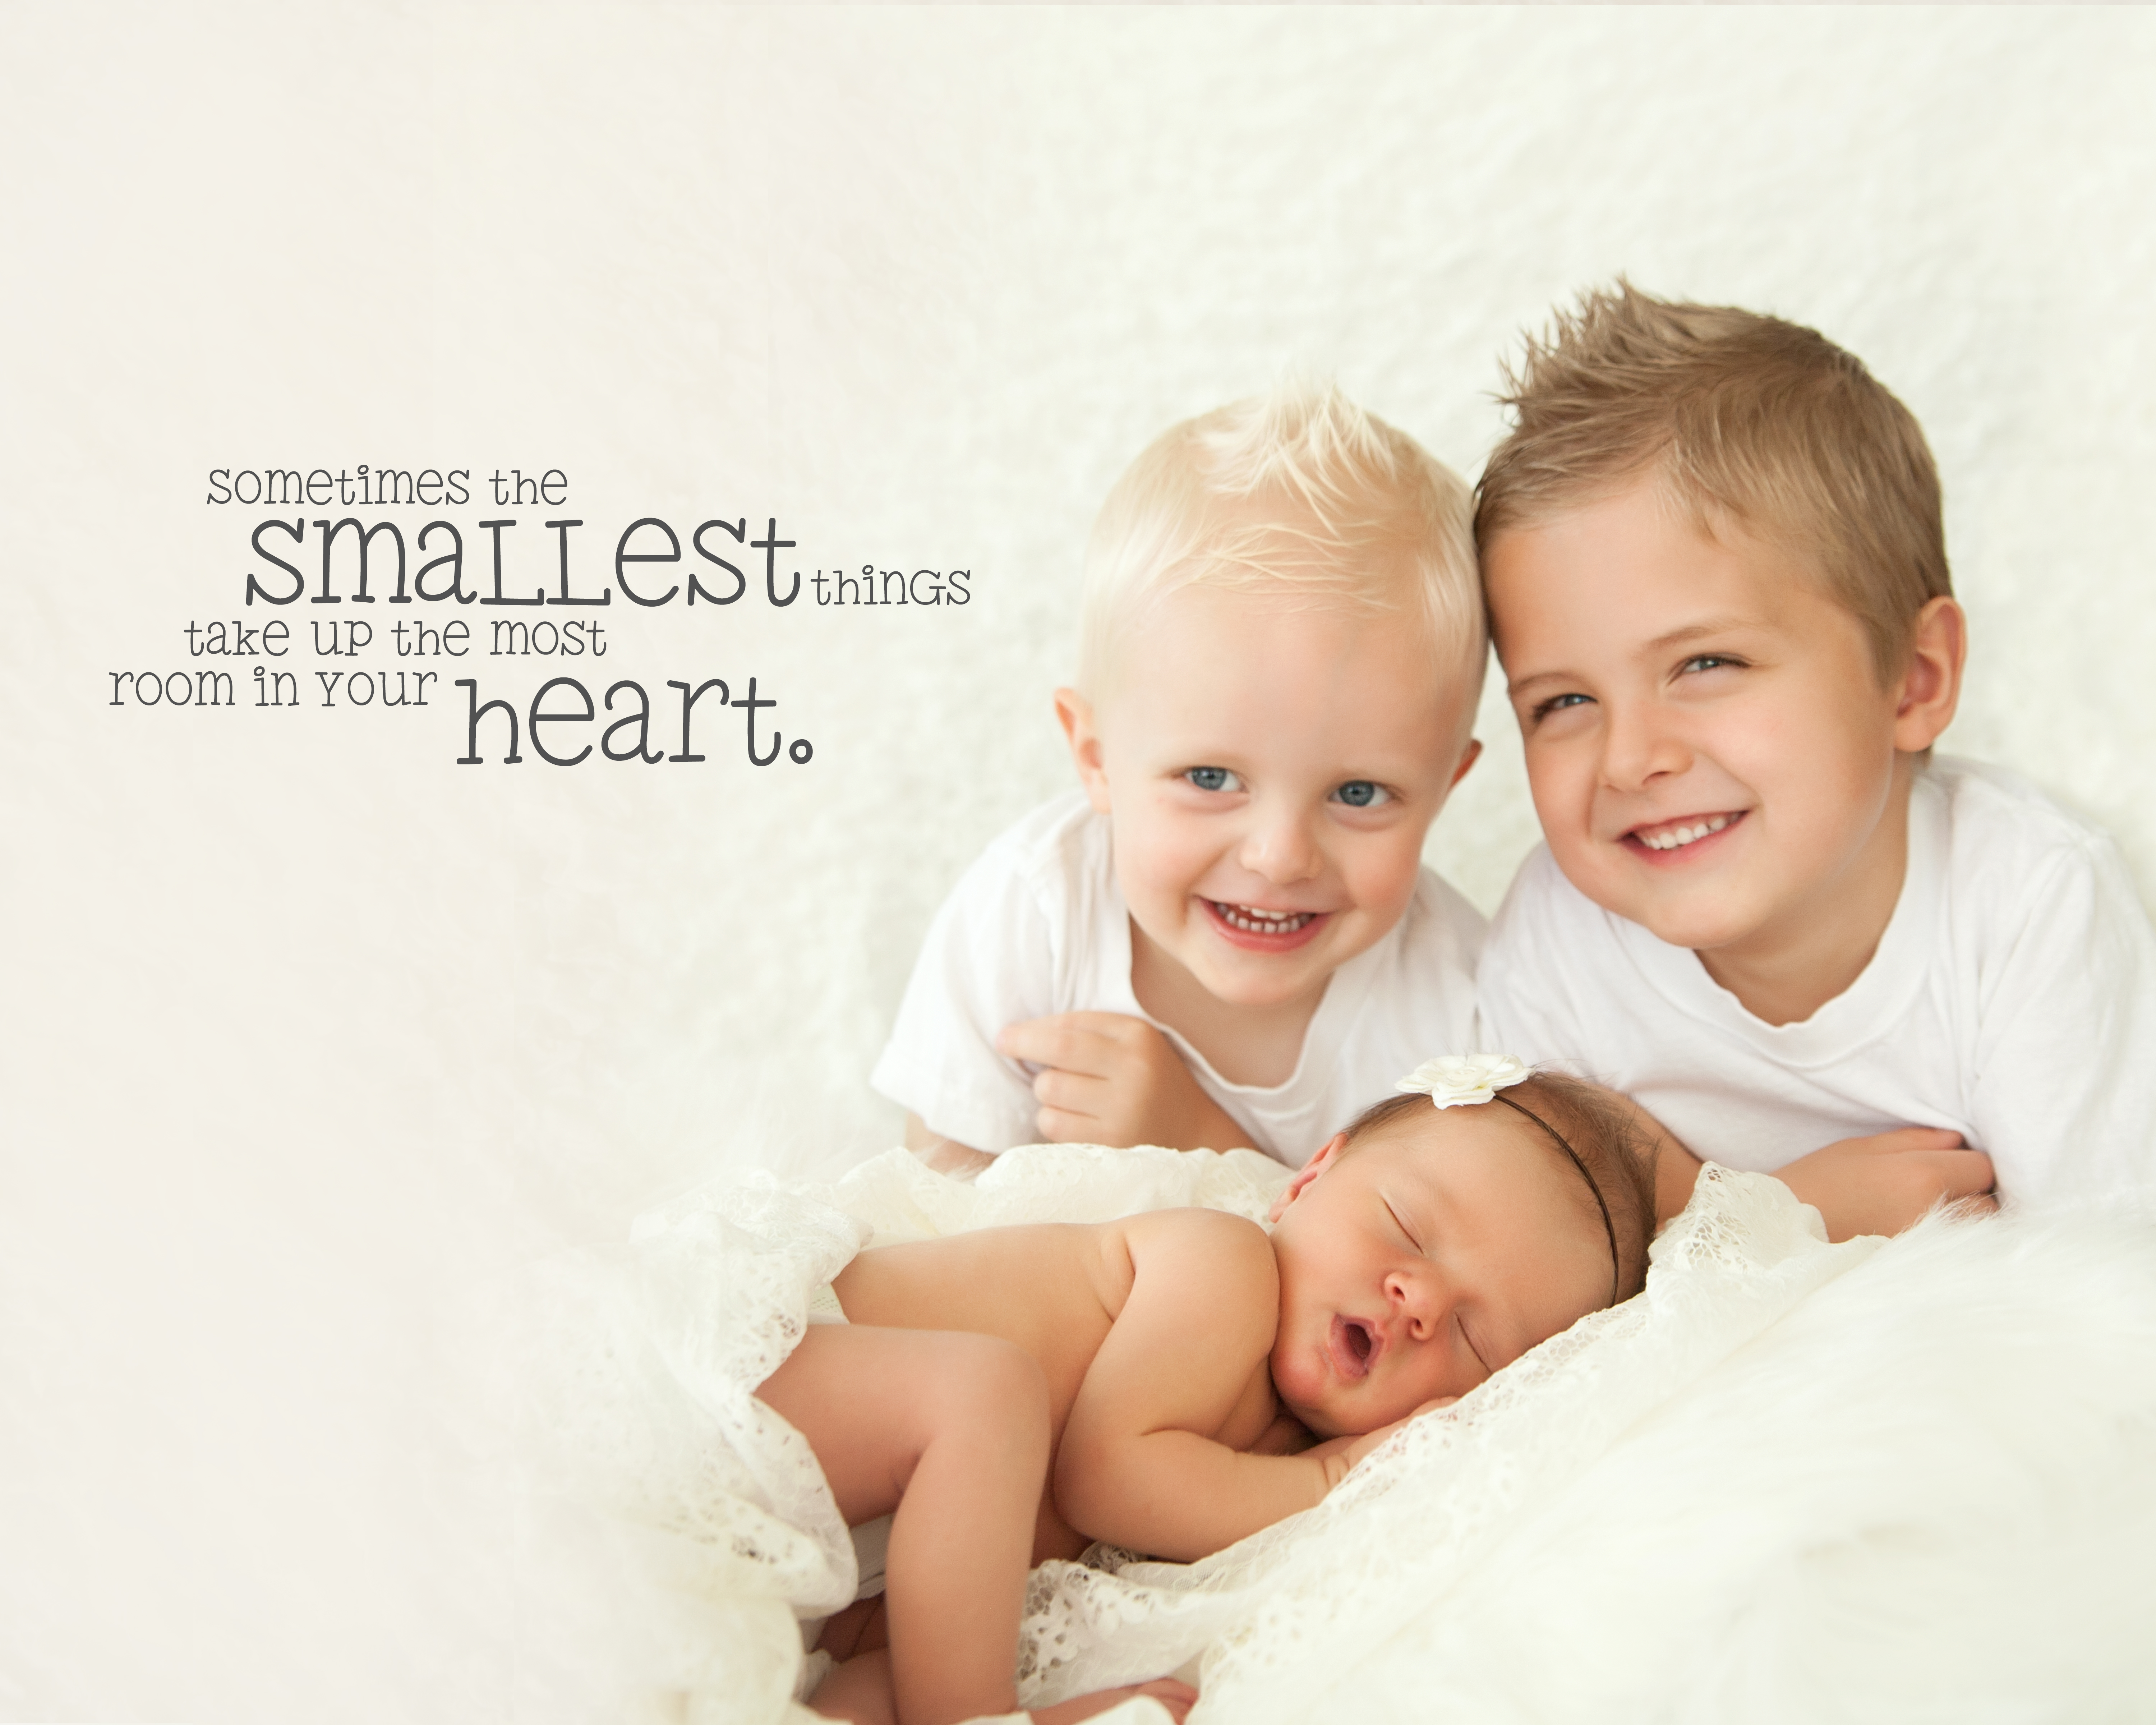 3 kids smallest place